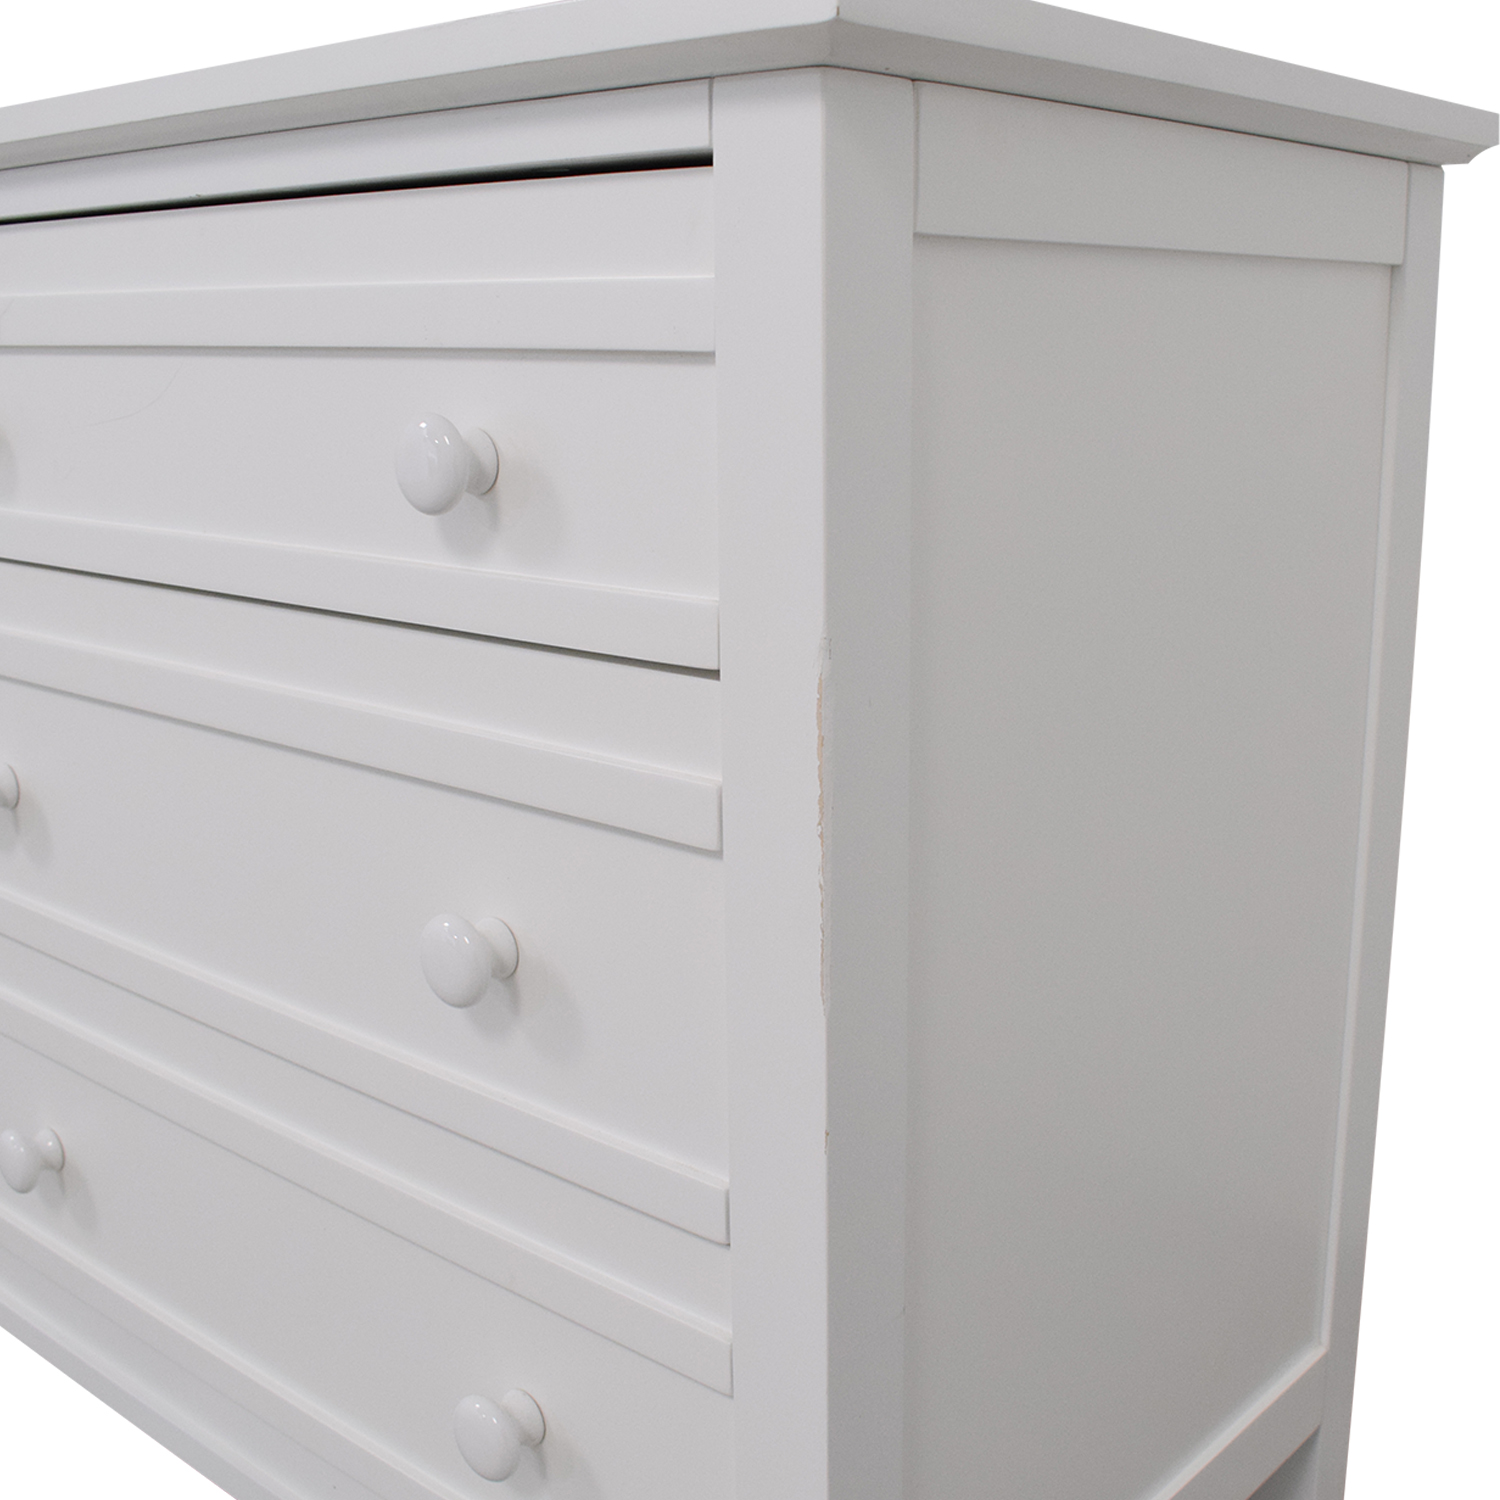 Crate & Barrel Crate & Barrel Brighton Six Drawer Dresser nj